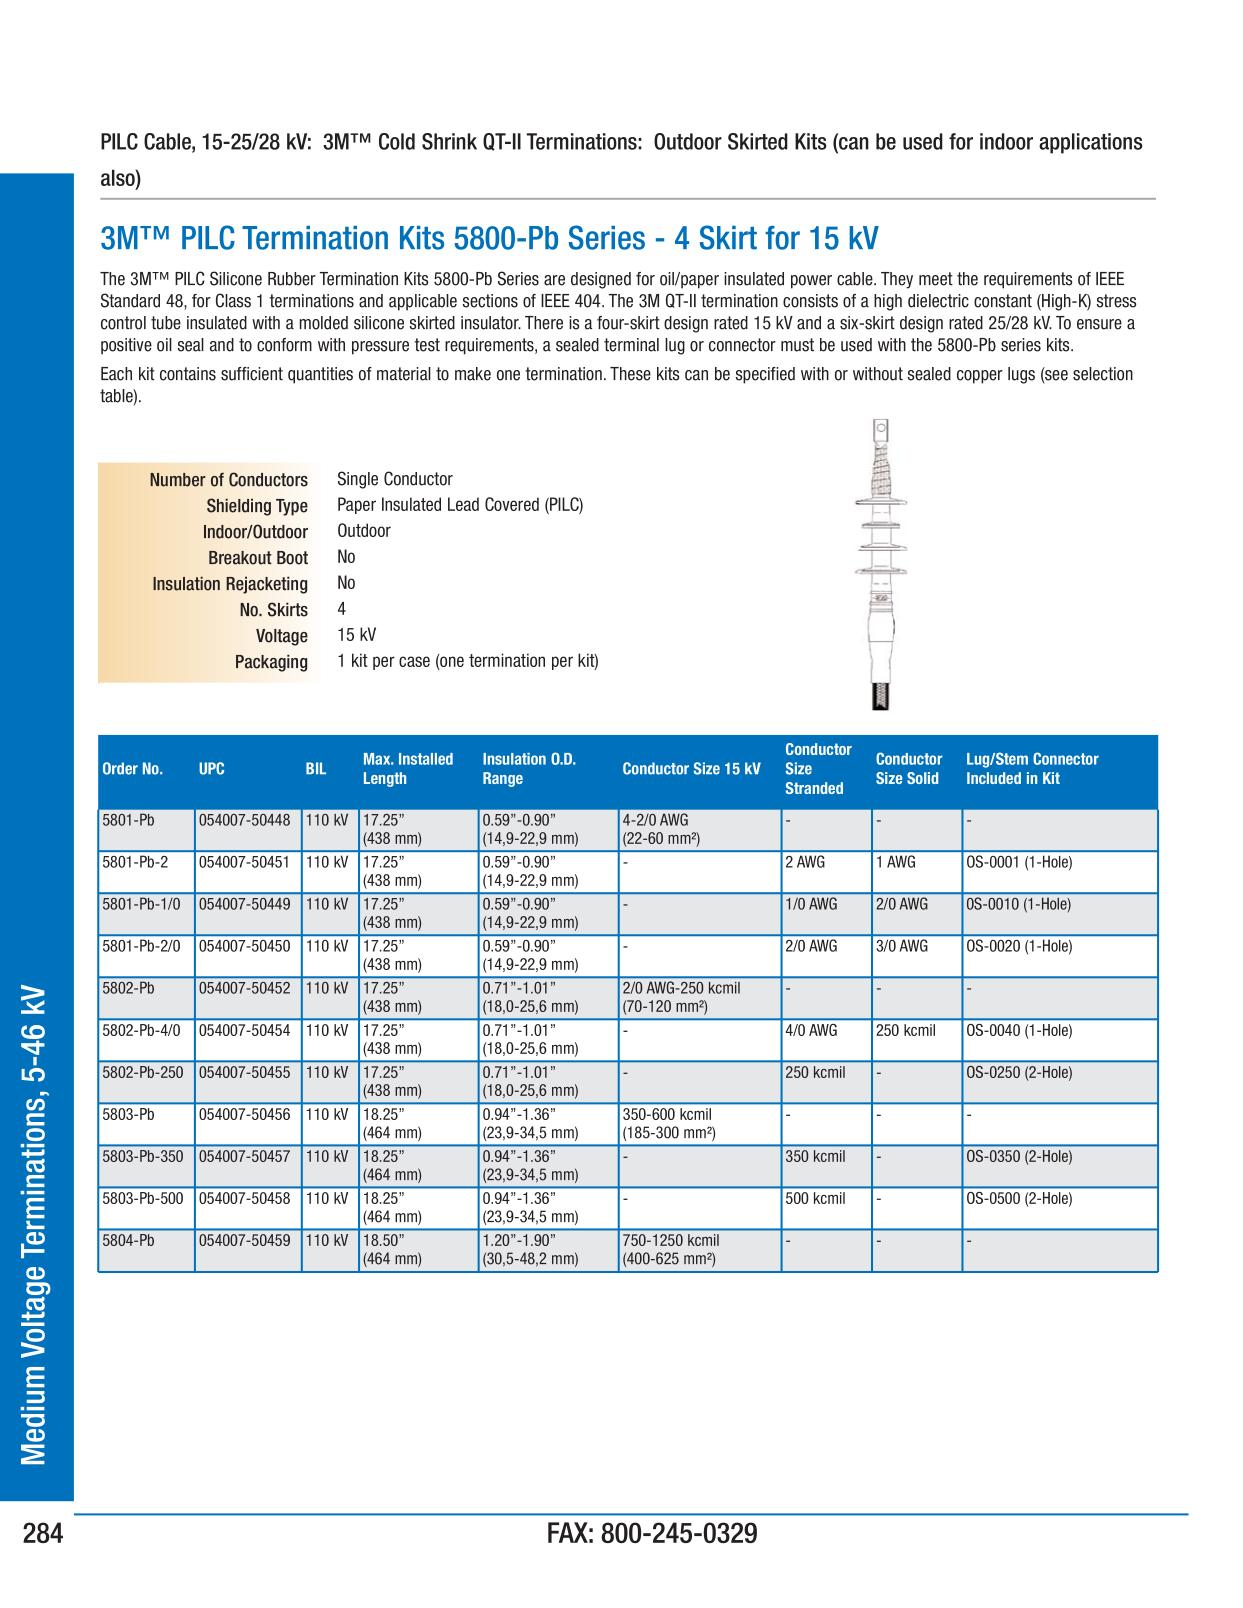 Medium voltage terminations 5 46 kv 3m electrical products page 285 greentooth Choice Image